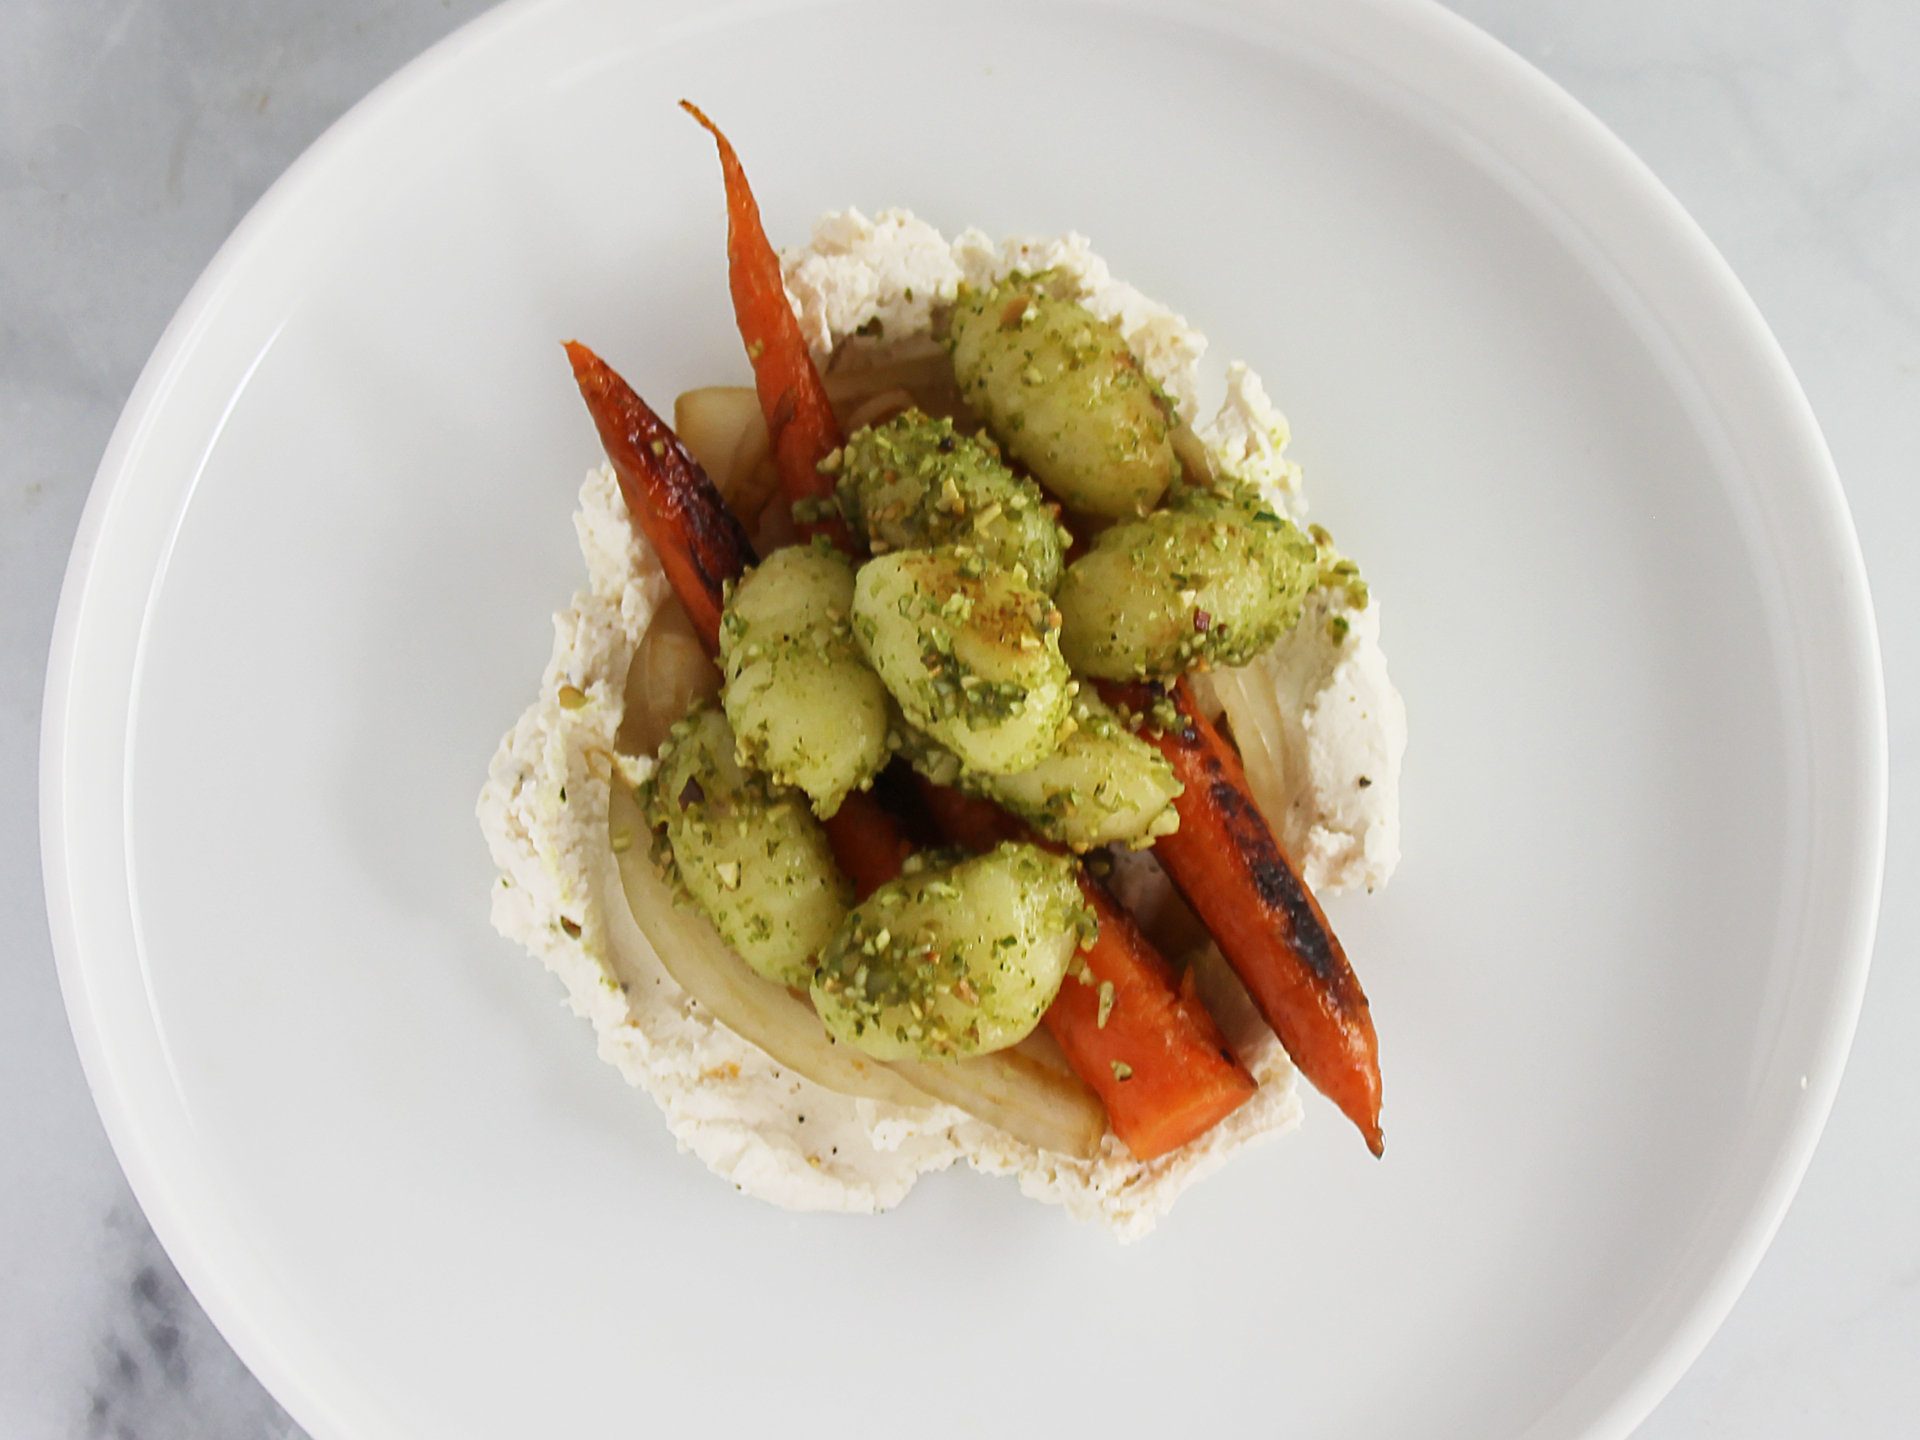 Pan Roasted Carrots with Caramelized Onions, Gnocchi, Herb Pesto and Whipped Ricotta